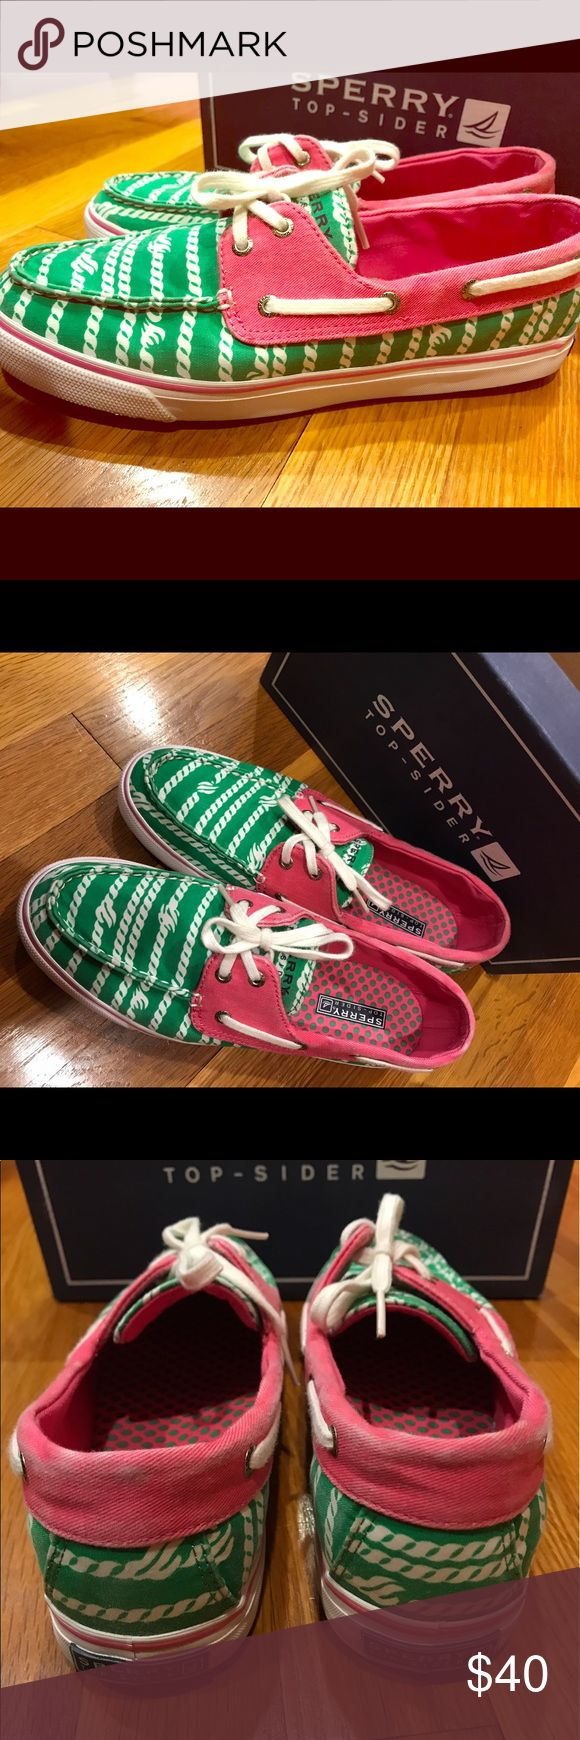 Sperry Top-Spider Buscayne Rope Sperry Top-Spider boat shoes in a green and white nautical rope pattern with a pink accent. Only worn twice, some wear from the store (marked as clearance). Extremely comfortable and perfect for summer! Sperry Top-Sider Shoes Flats & Loafers